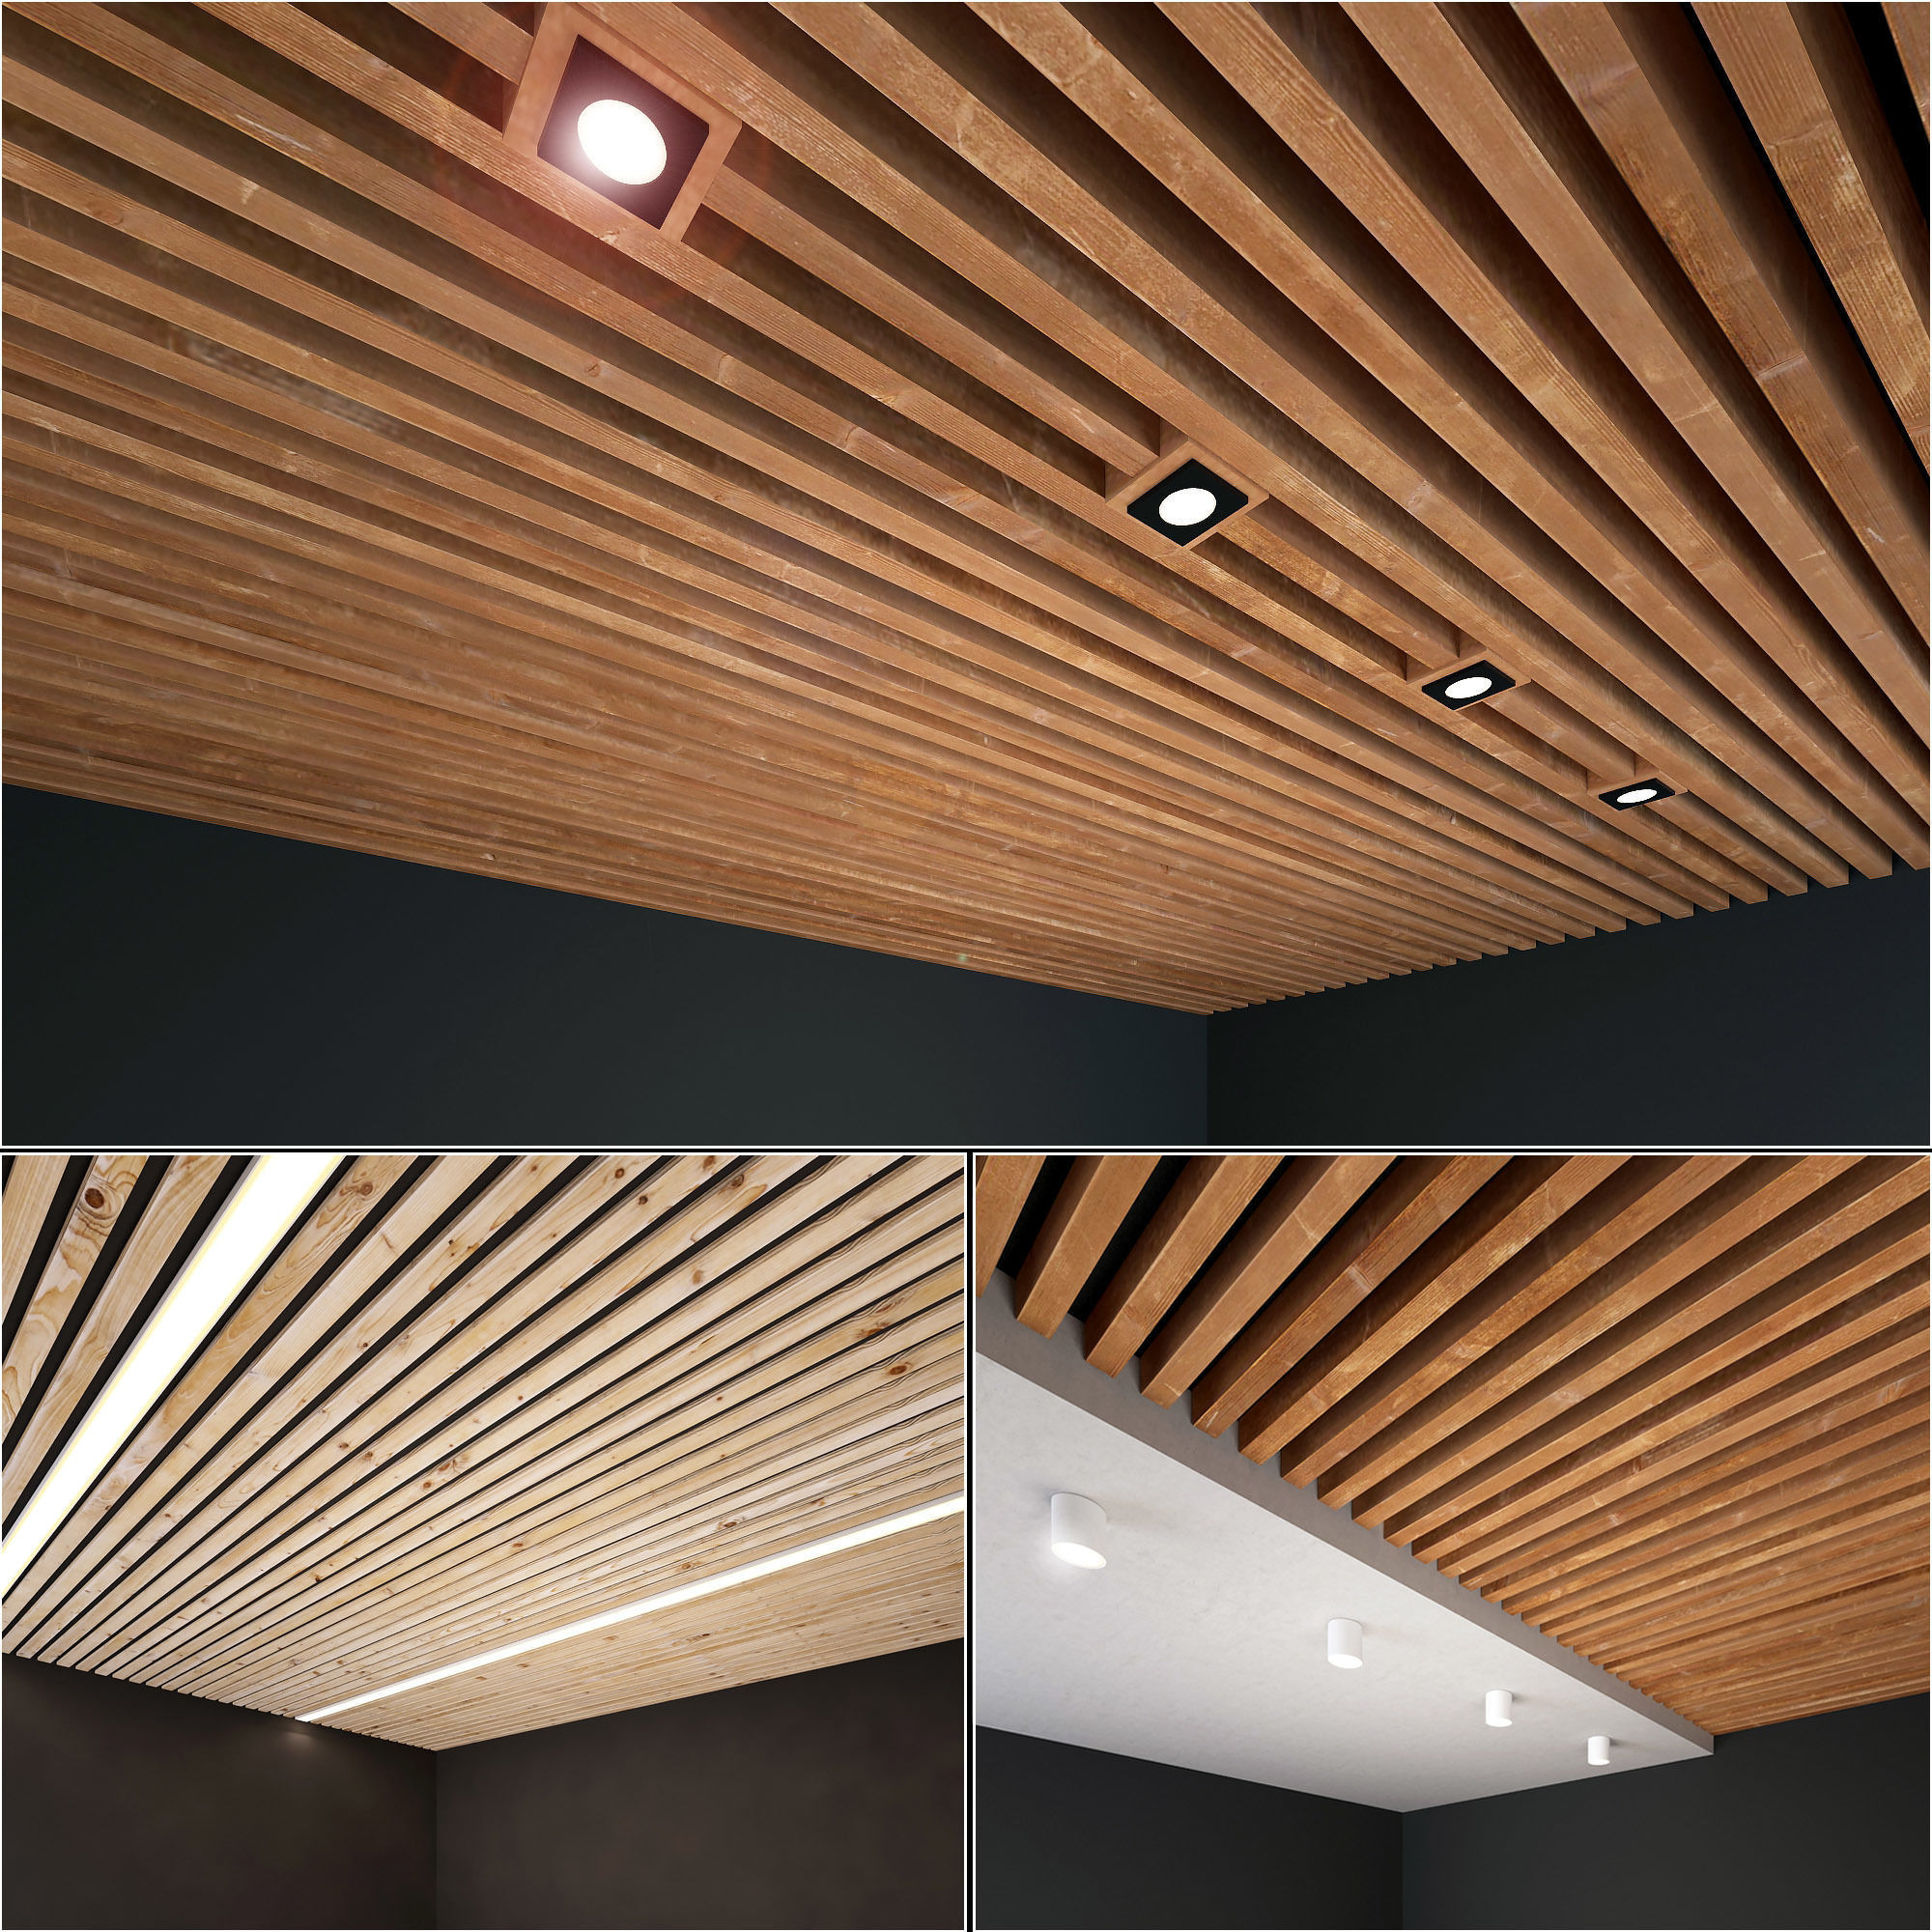 Wooden Ceiling Set 5 3D | CGTrader